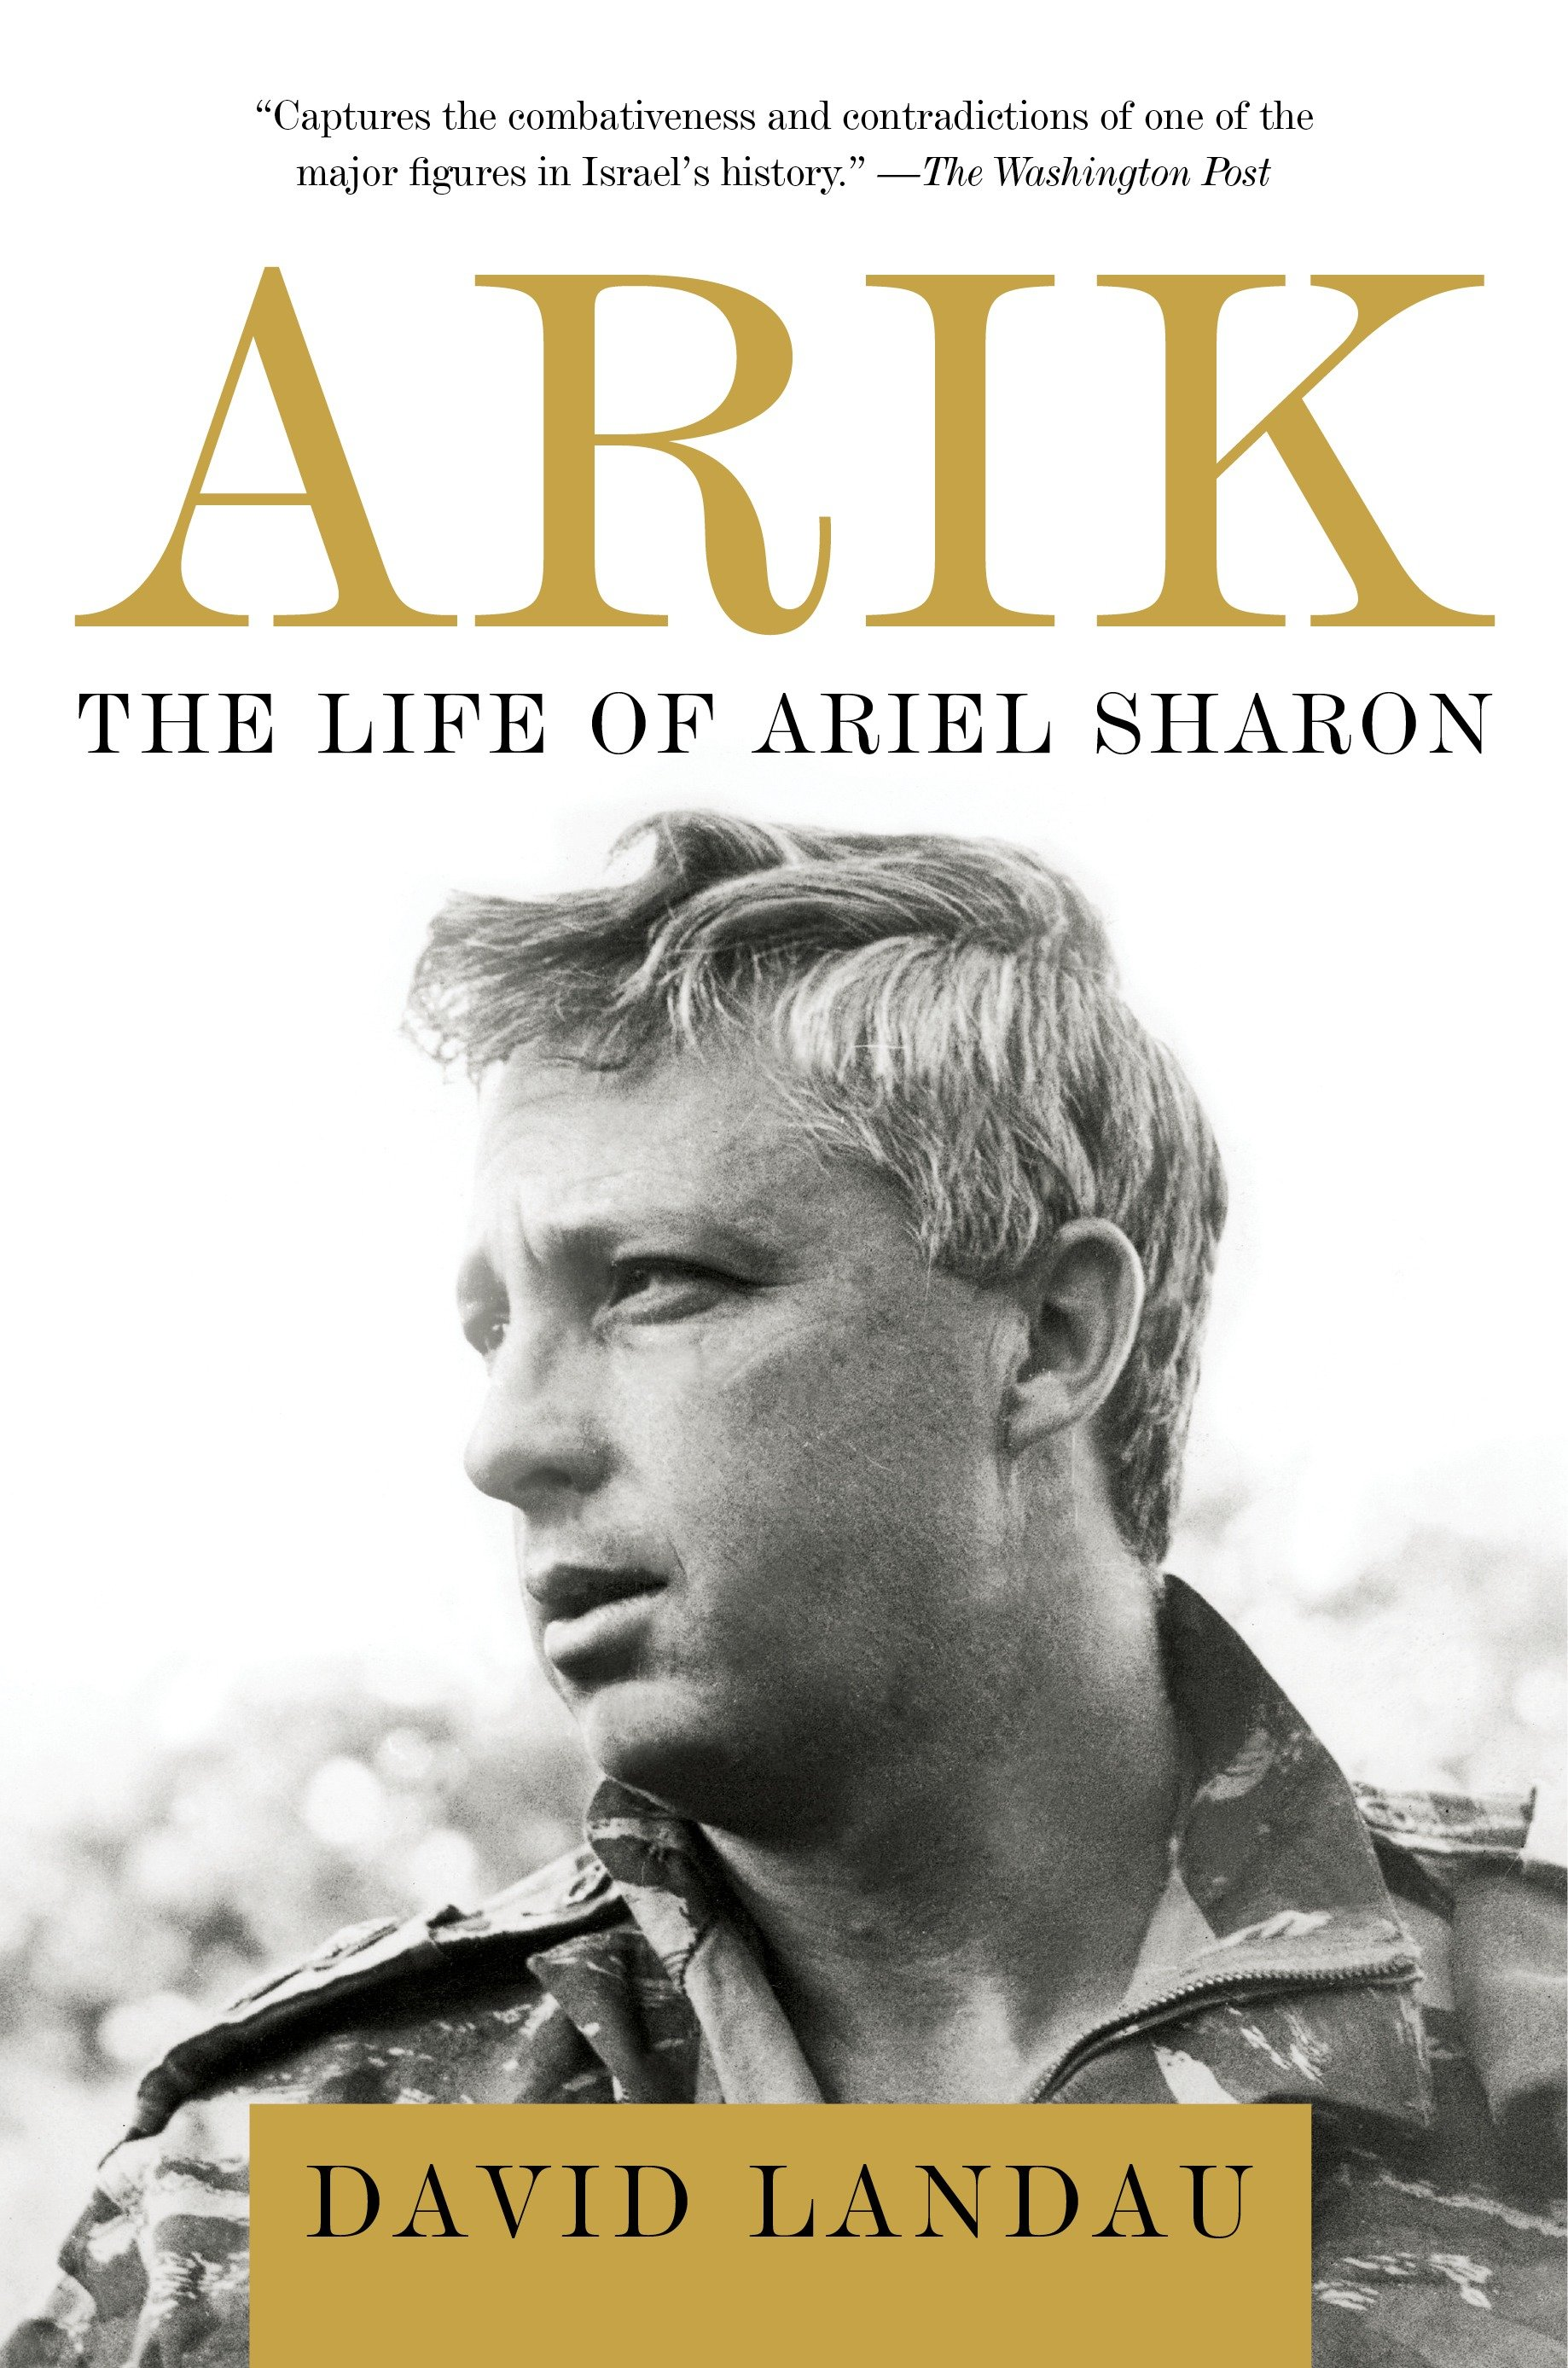 Arik The Life of Ariel Sharon